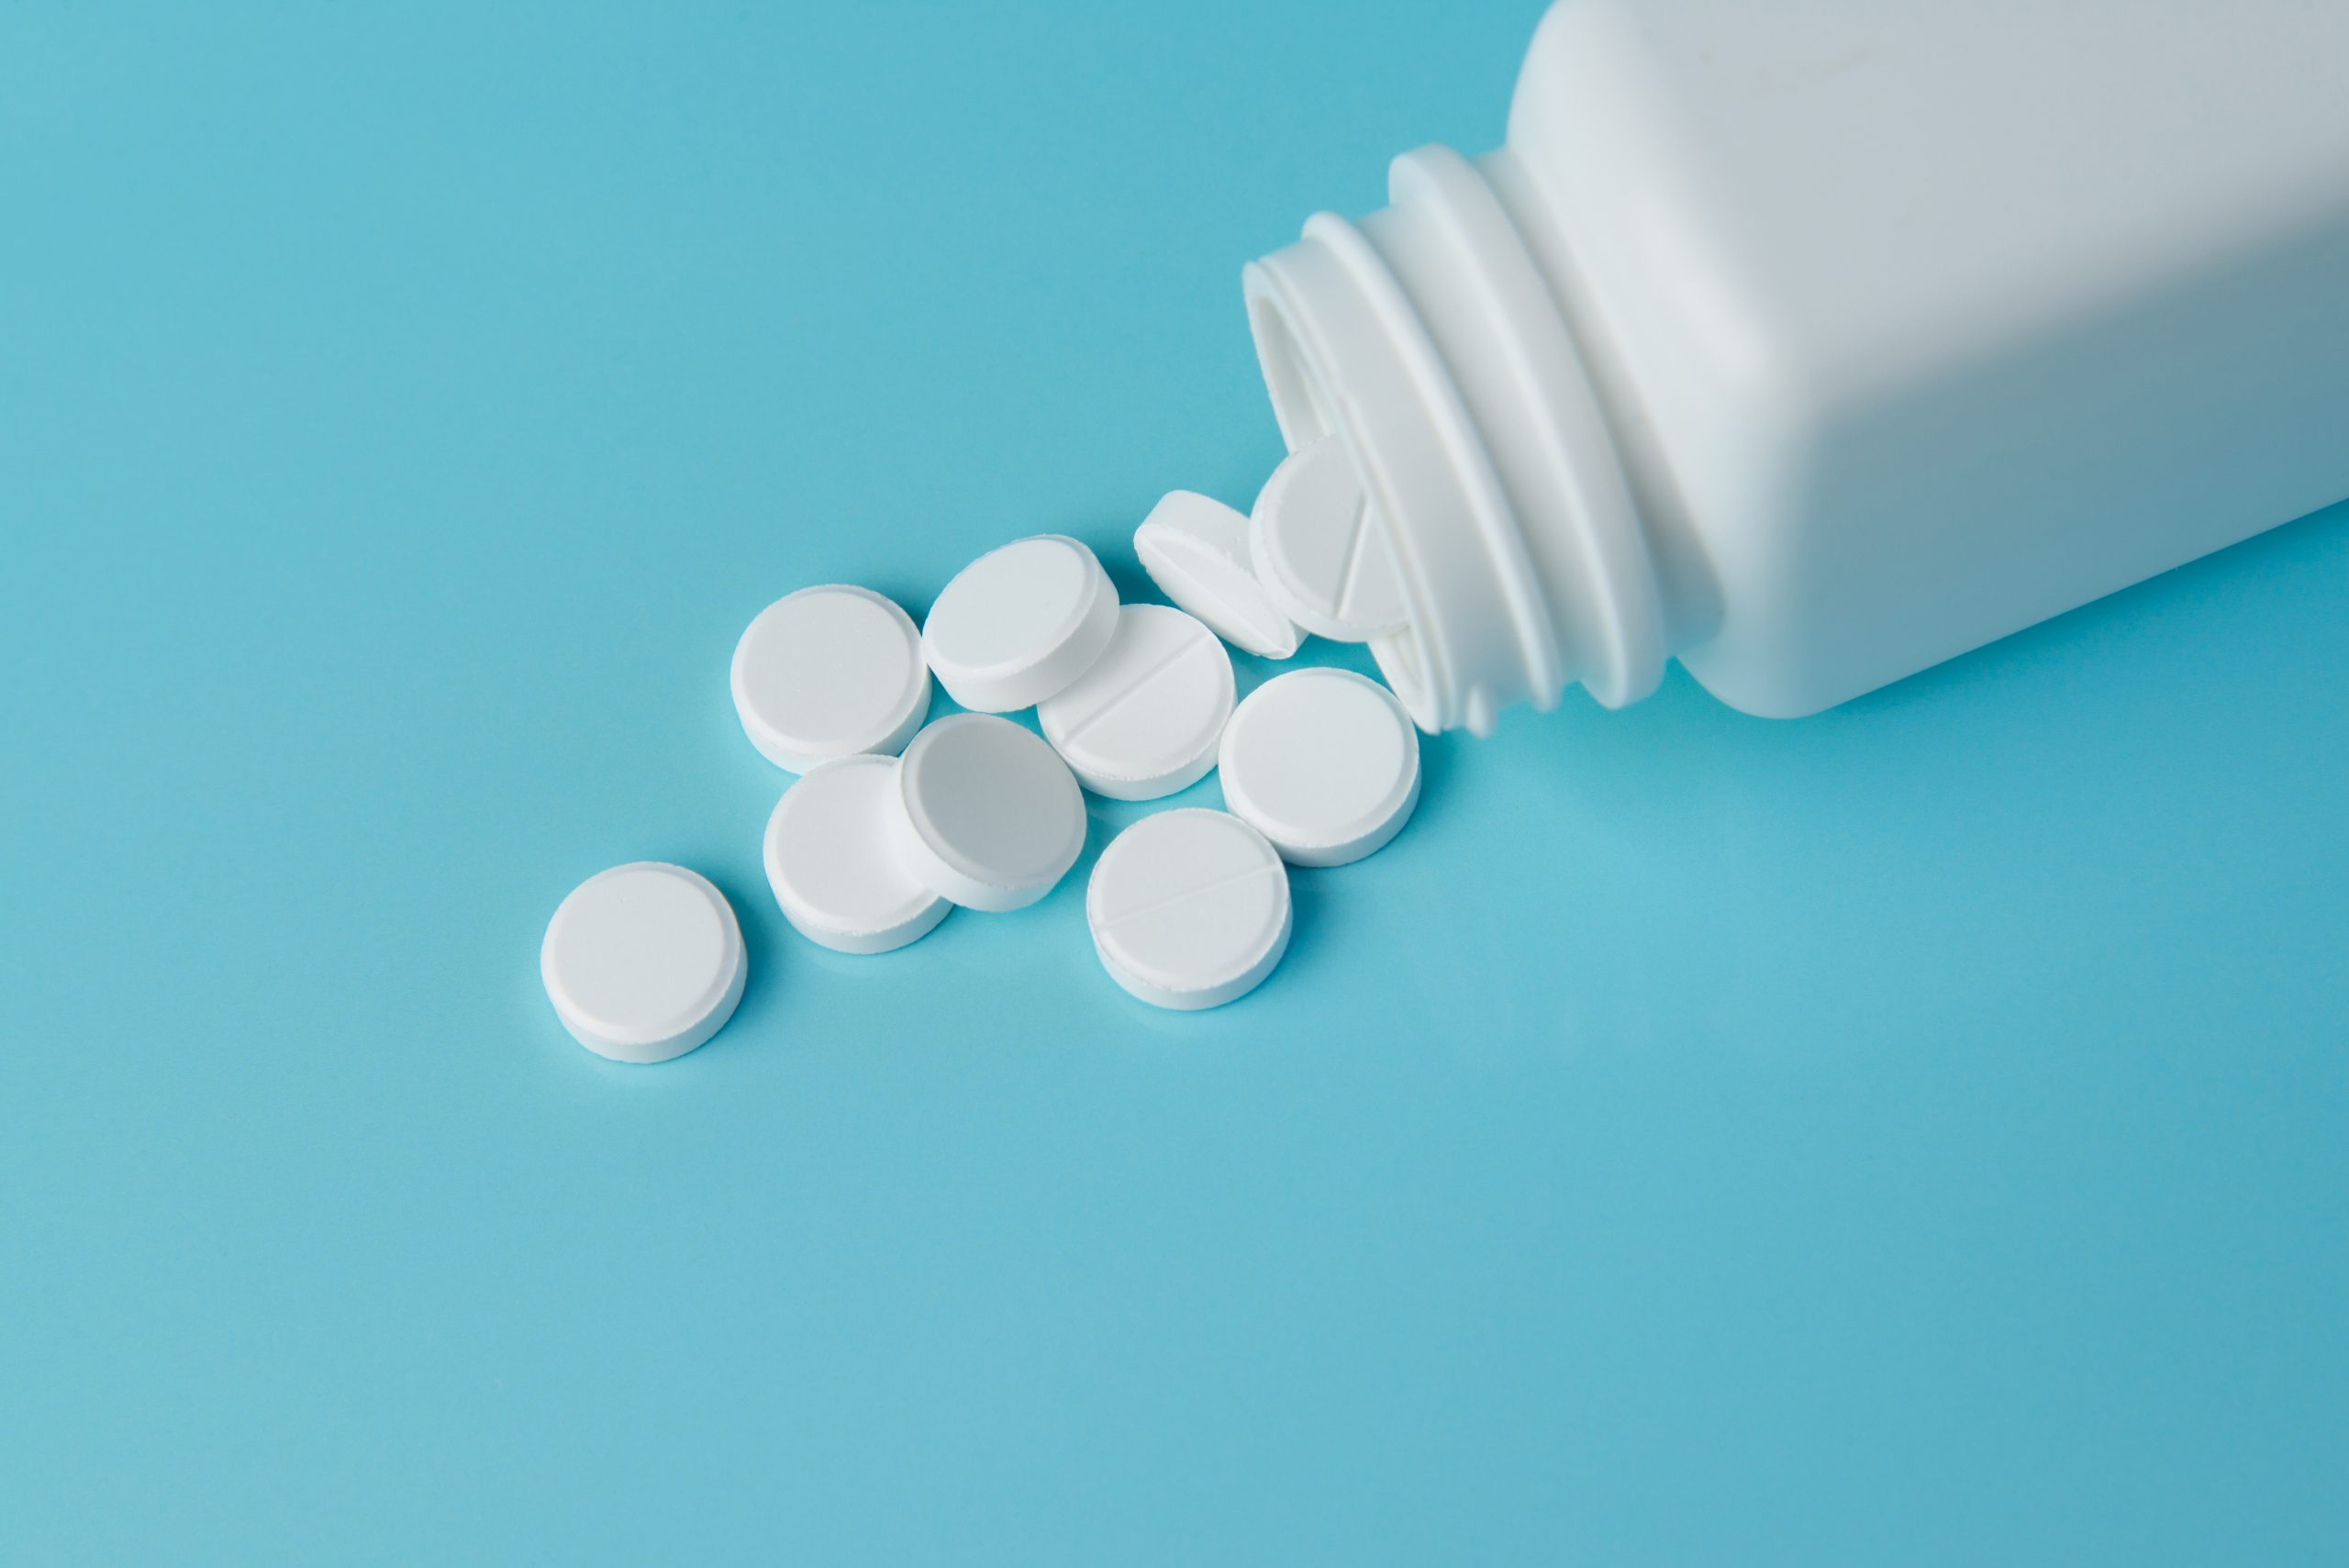 Daily Aspirin Recommended by Doctor May Prevent Colon Cancer